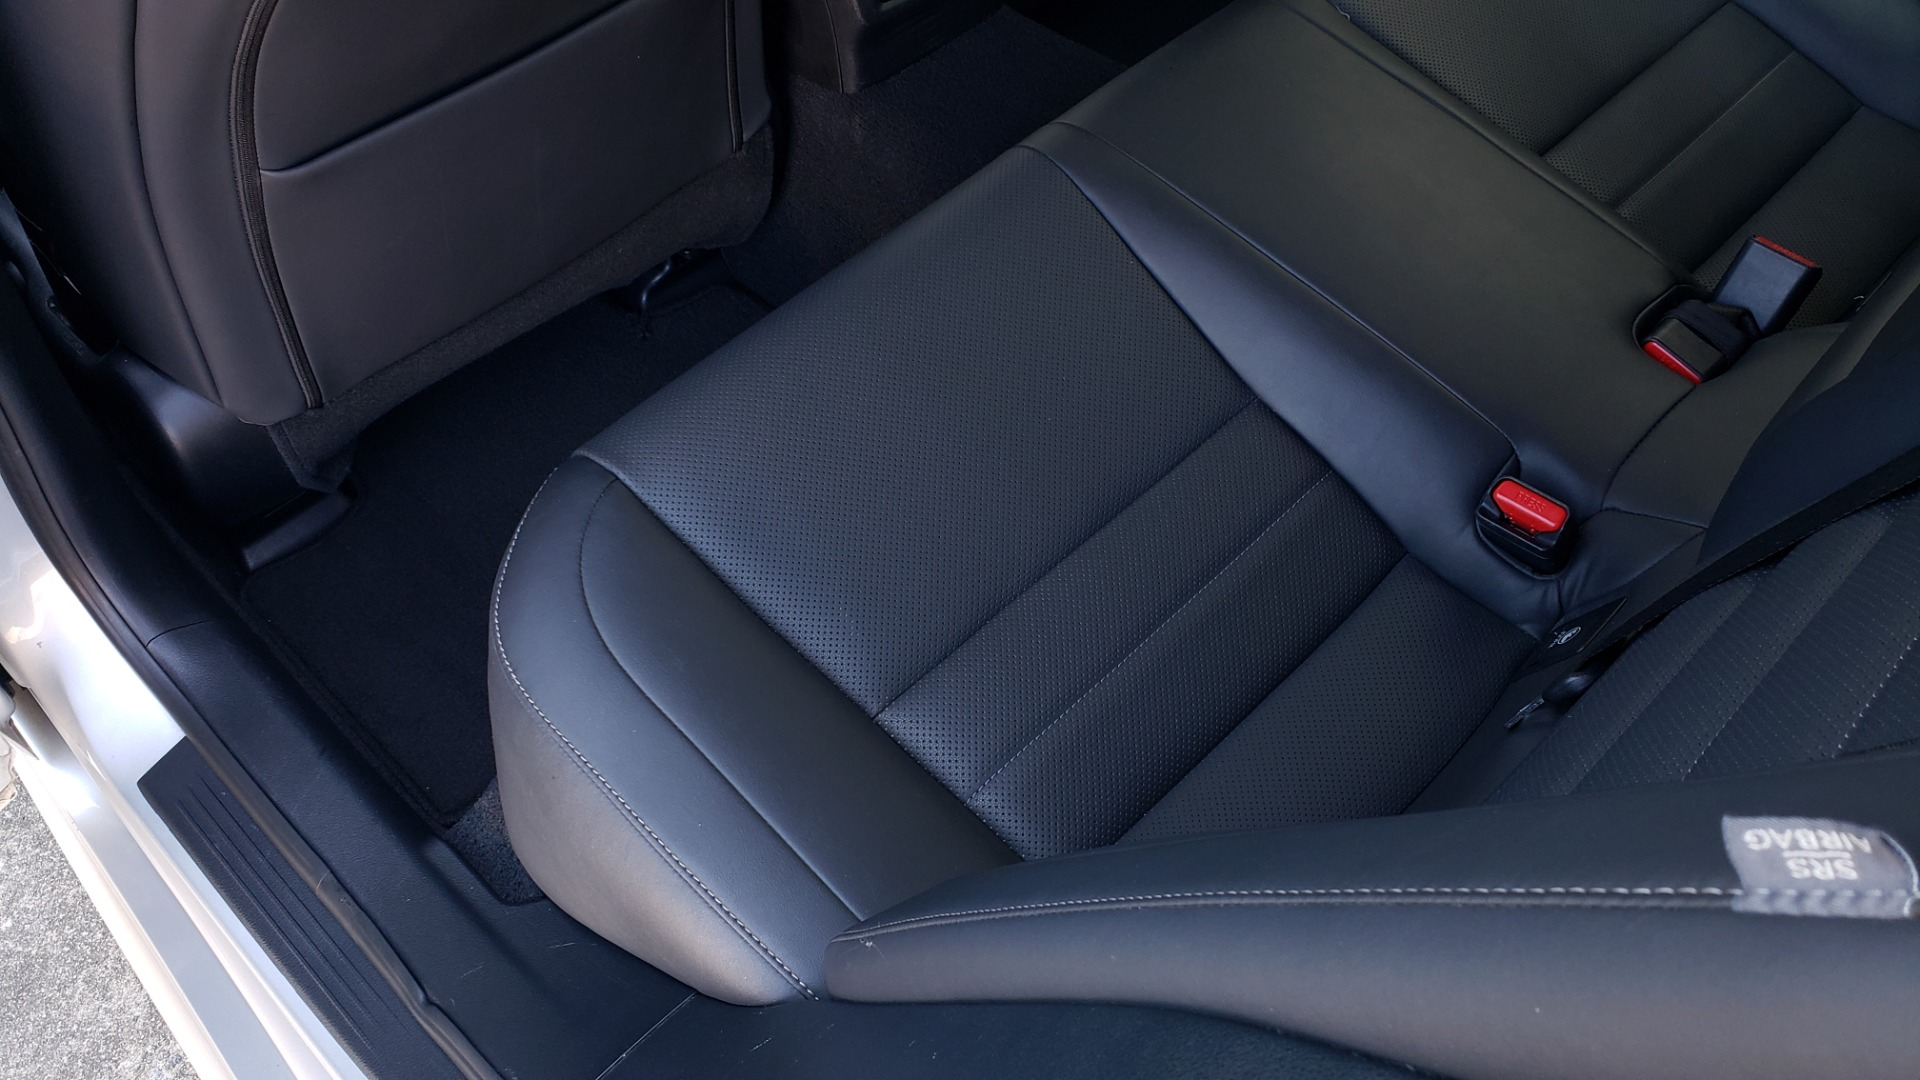 Used 2015 Lexus IS 250 F-SPORT / BSM / SUNROOF / VENT SEATS / REARVIEW for sale Sold at Formula Imports in Charlotte NC 28227 59